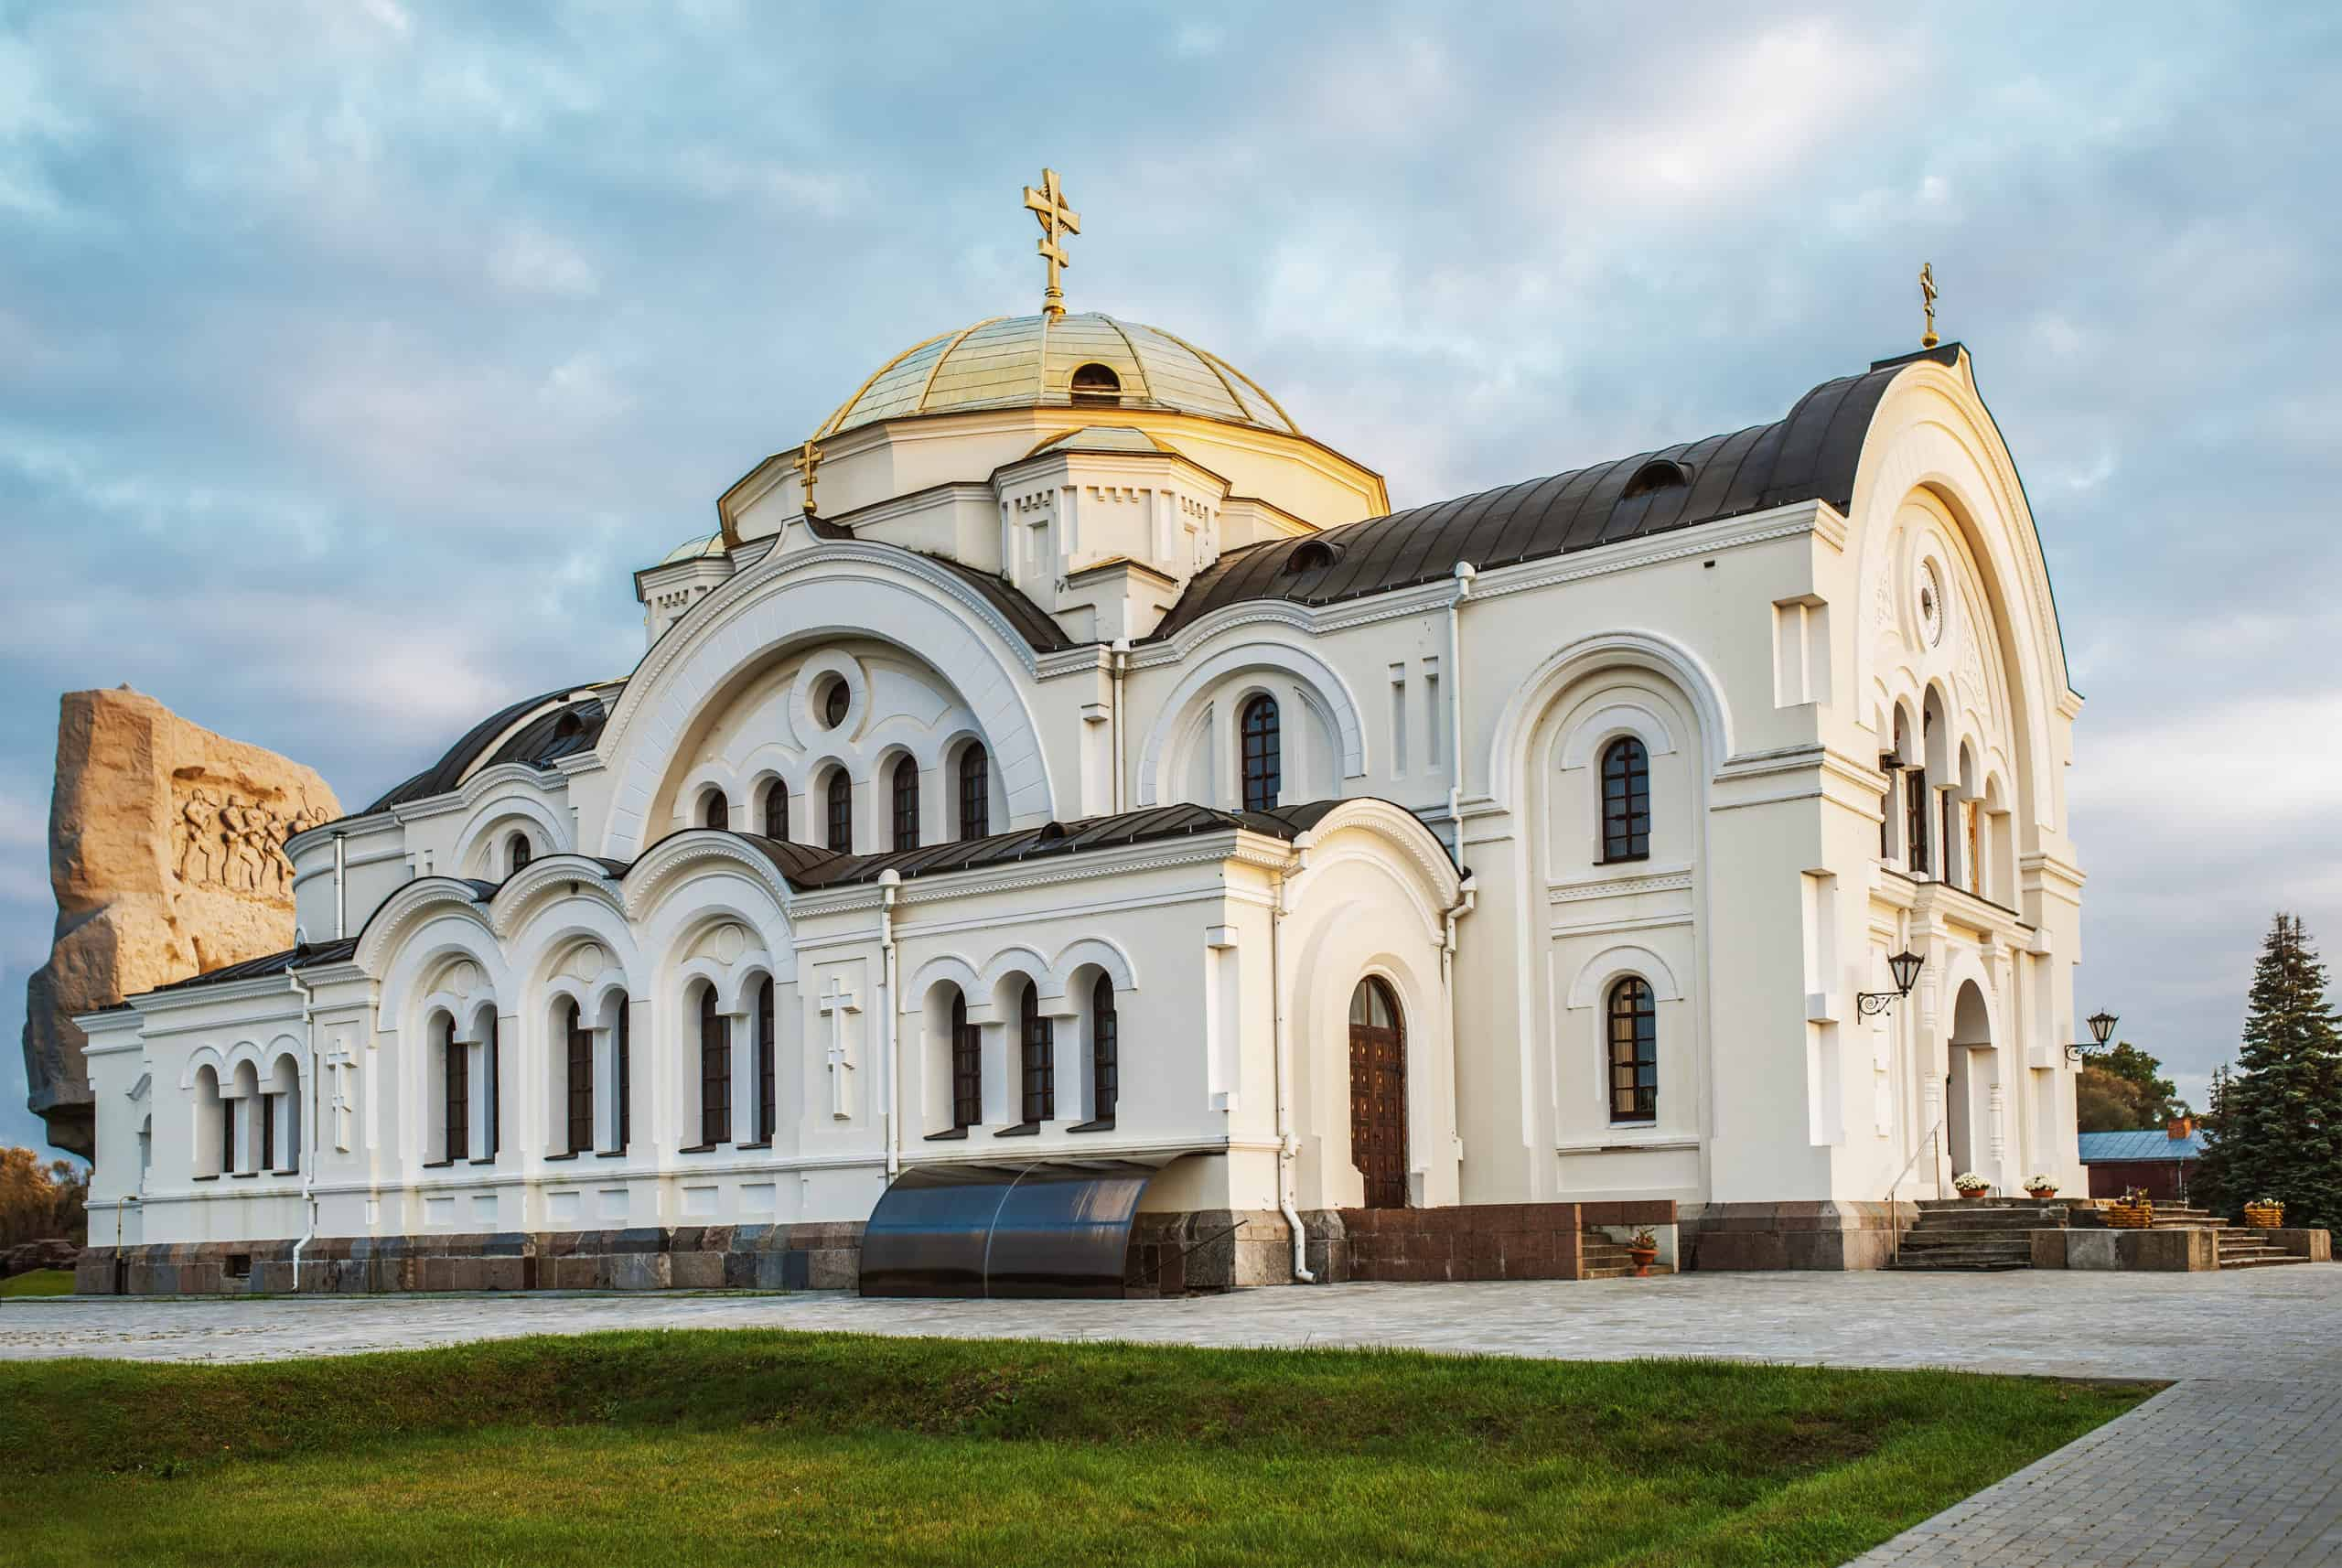 St. Nicholas Church in Brest Fortress